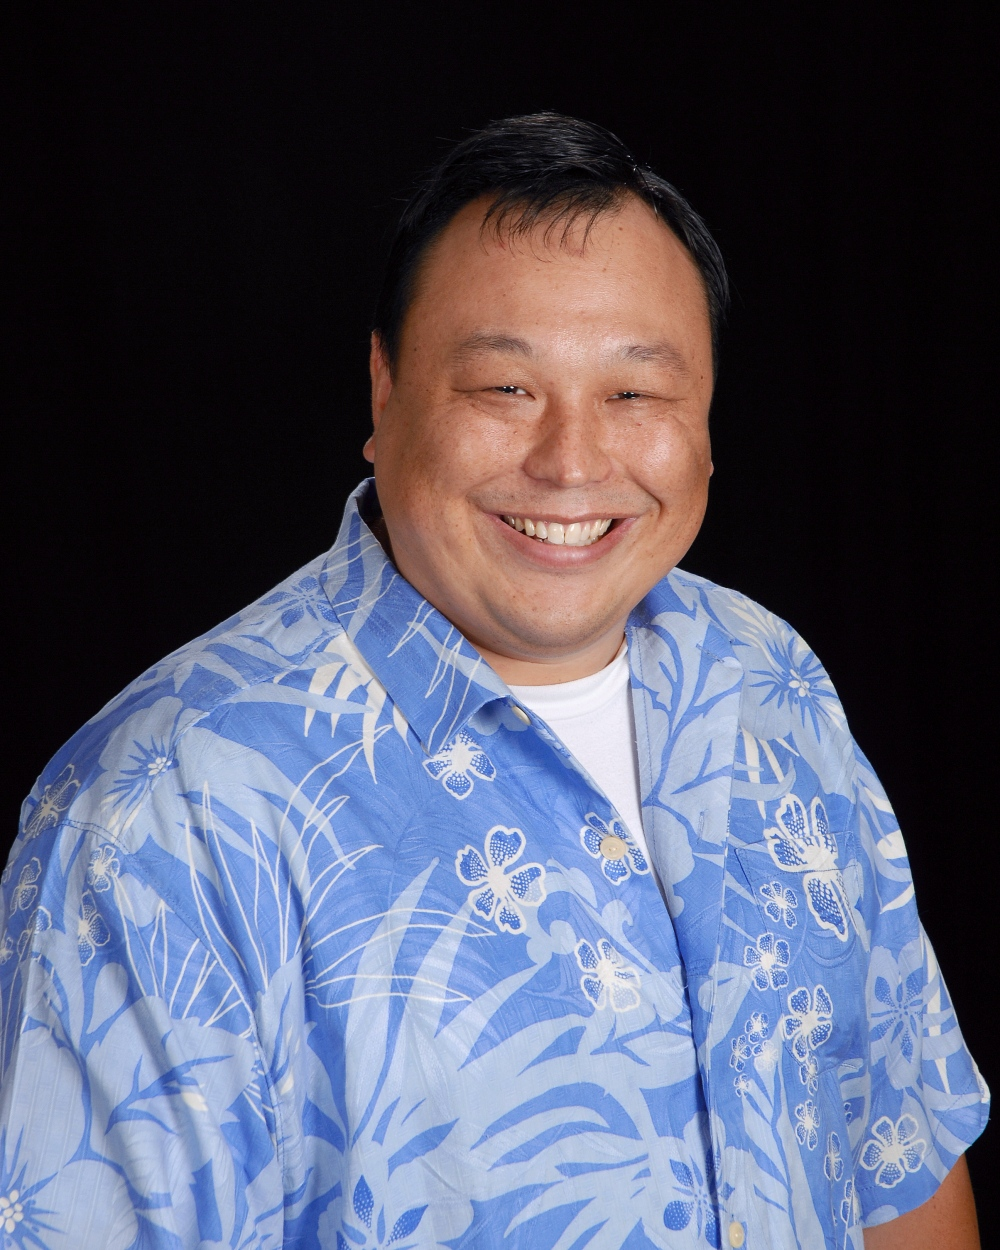 Alan Krober, senior pastor of Mililani Baptist Church